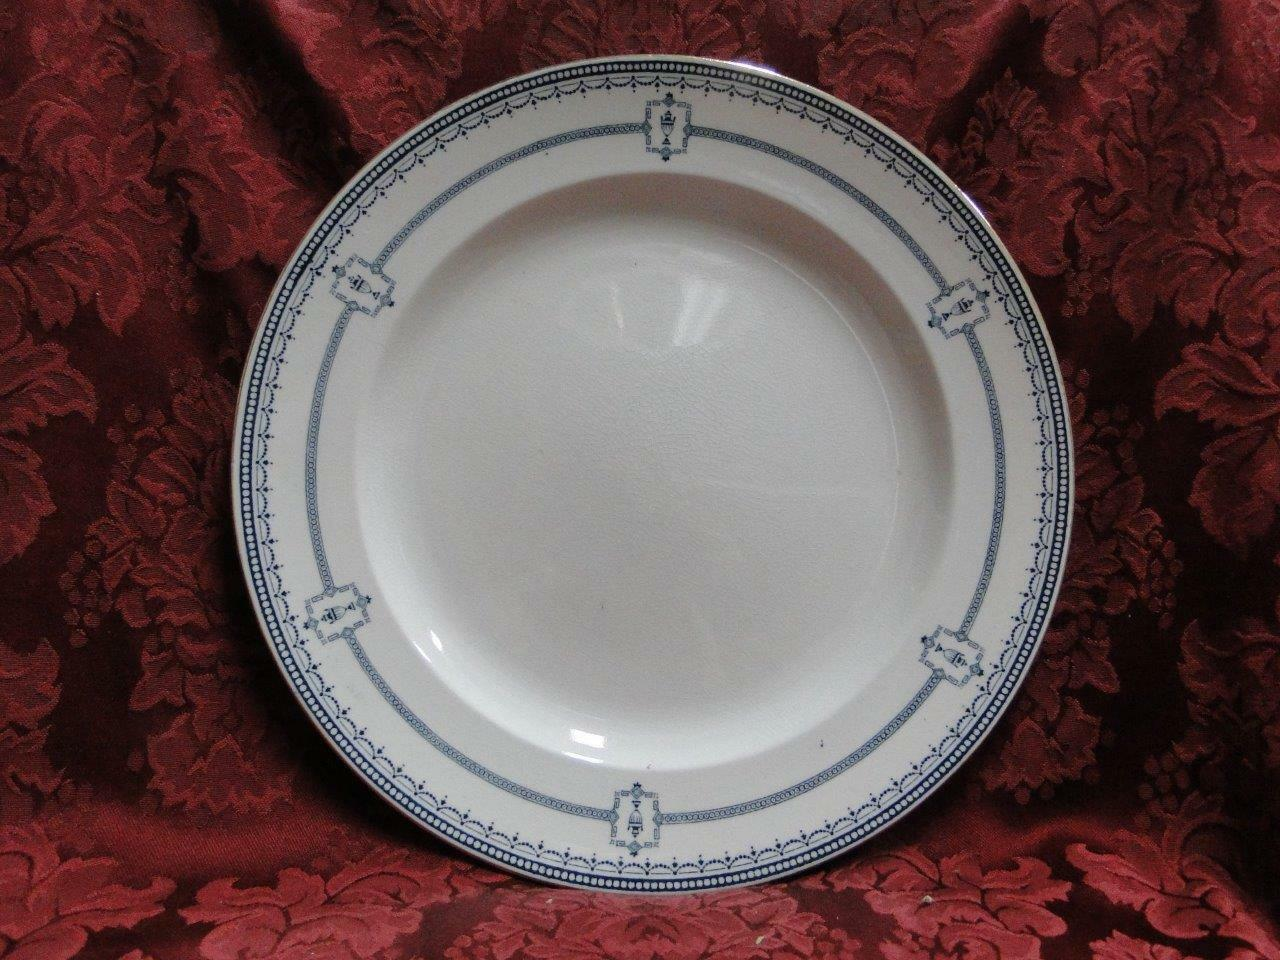 Royal Doulton Mina, Dark Blue Swags, Circles, Urns: Dinner Plate (s), 10.25""